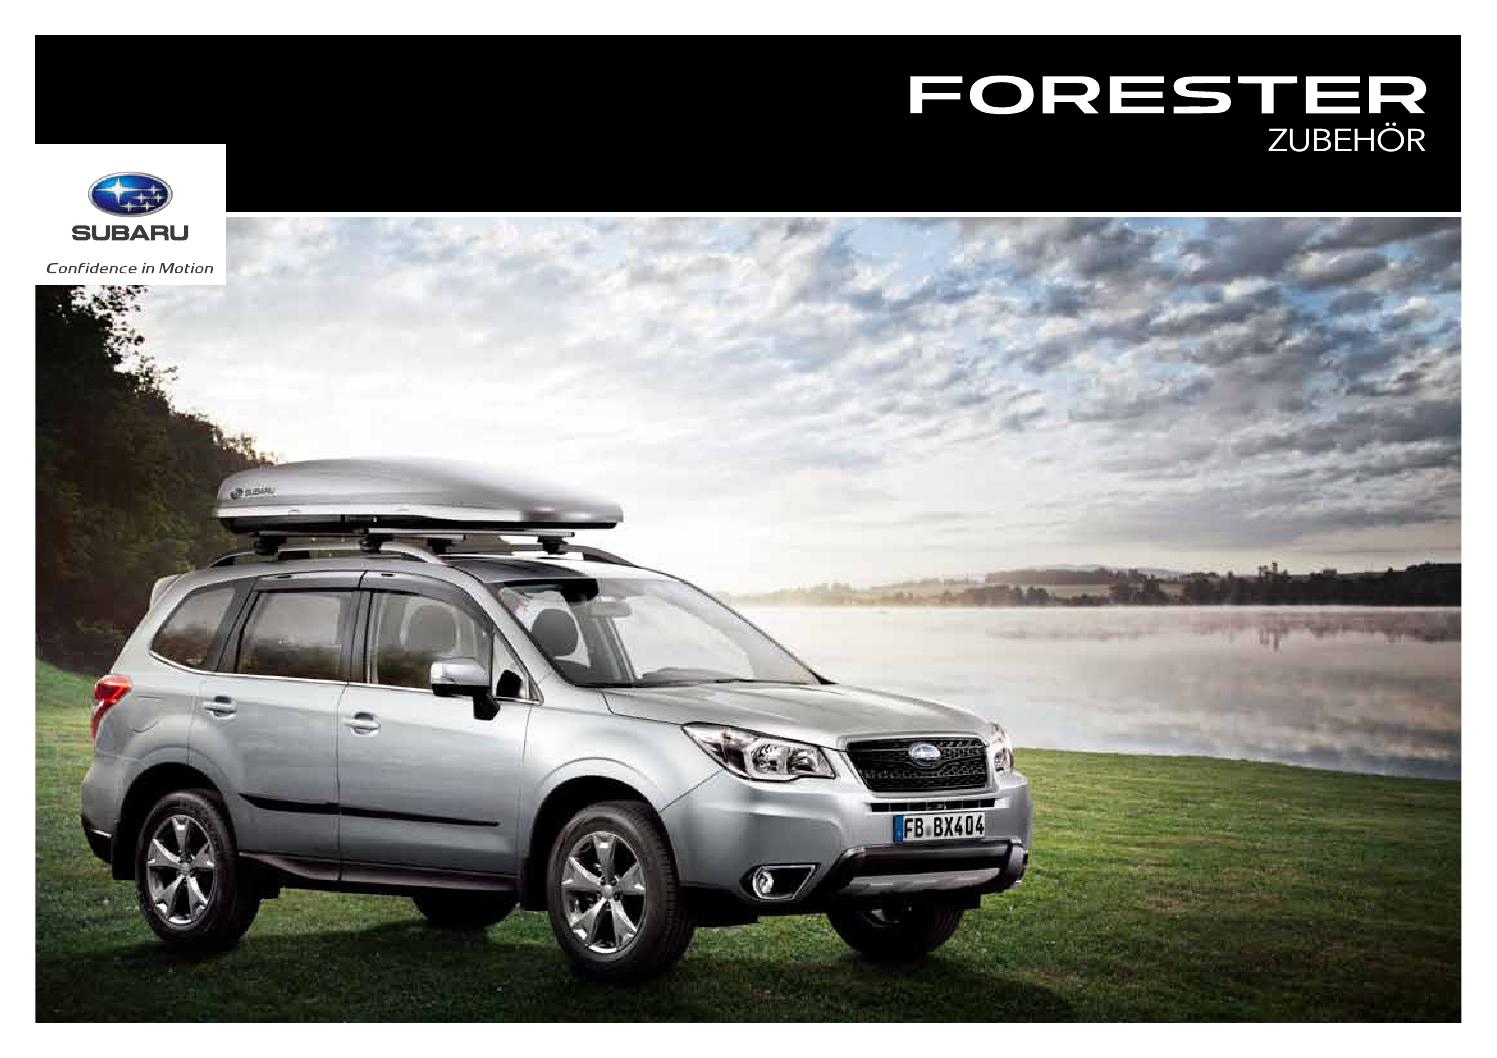 subaru forester zubeh r by springer fachmedien m nchen. Black Bedroom Furniture Sets. Home Design Ideas